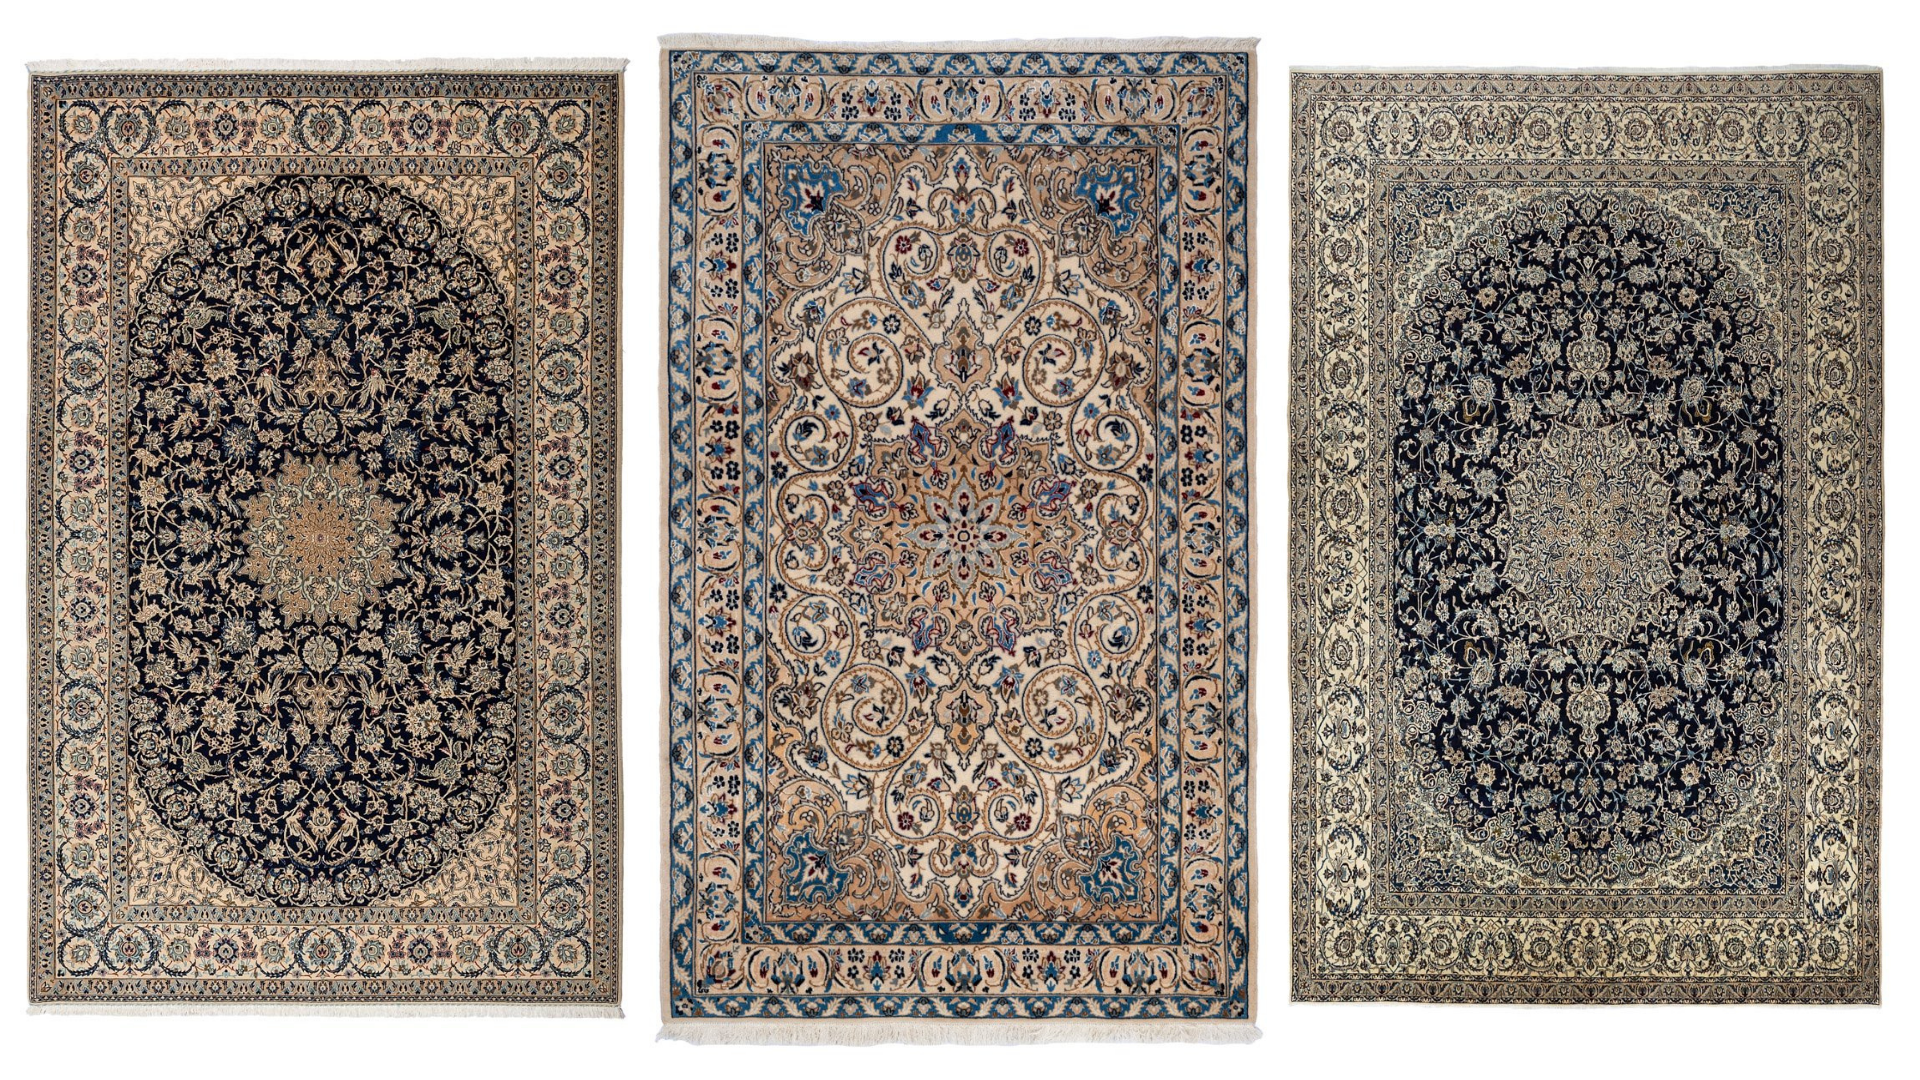 persian rugs, oriental rugs, home accessories, home decor, rug encyclopedia, rug guide, interior decor, interior design, london rugs, uk rugs, rug collections